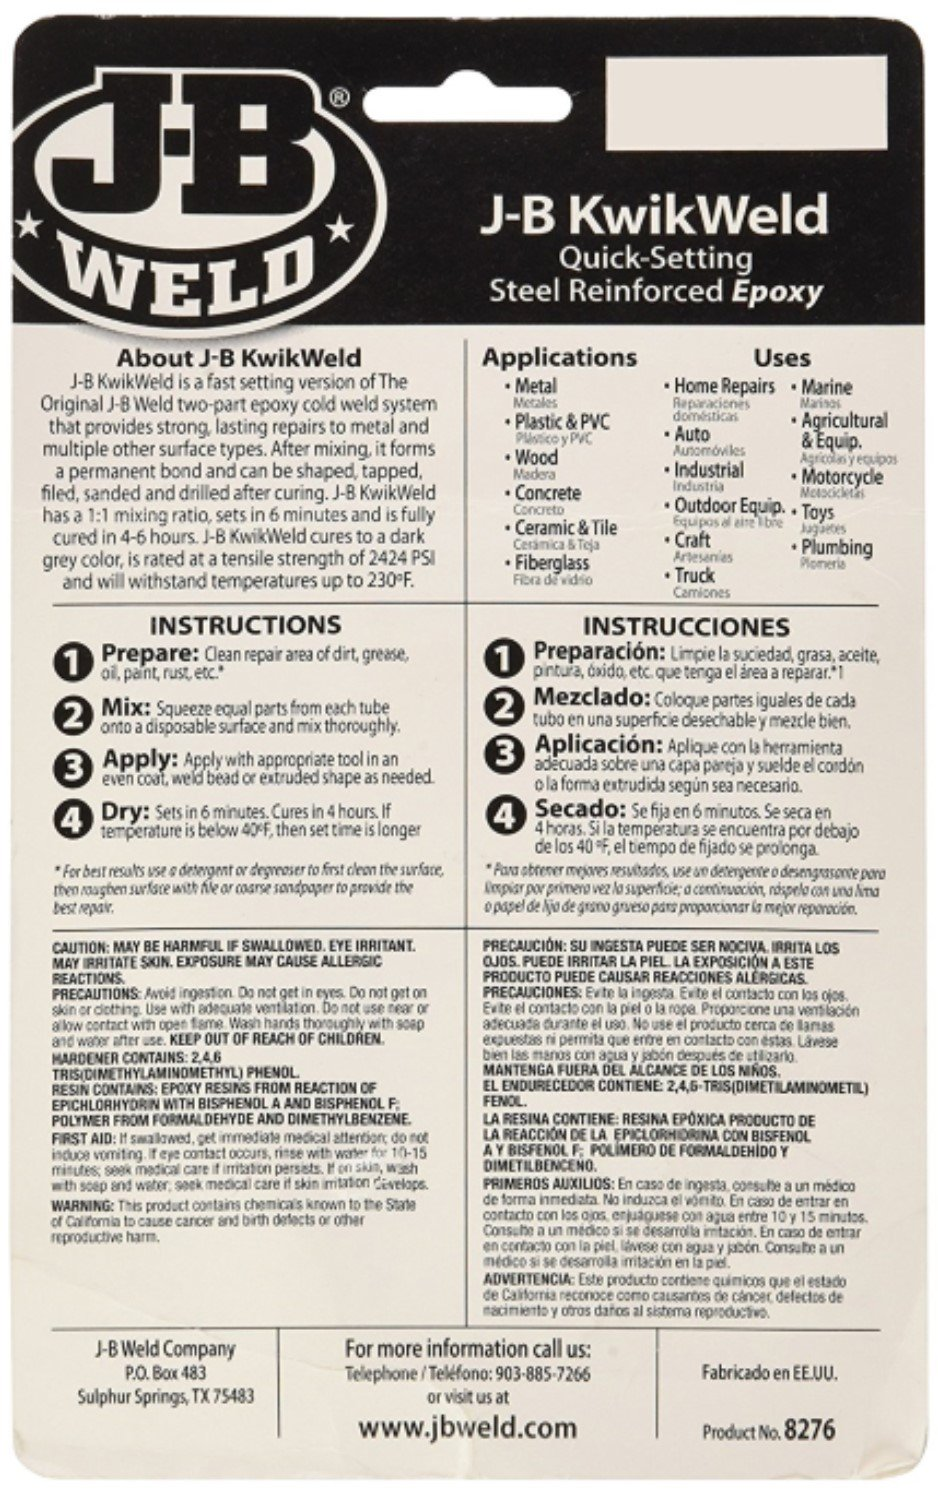 J-B Weld 8276 KwikWeld Quick Setting Steel Reinforced Epoxy - 2 oz, Pack of 6